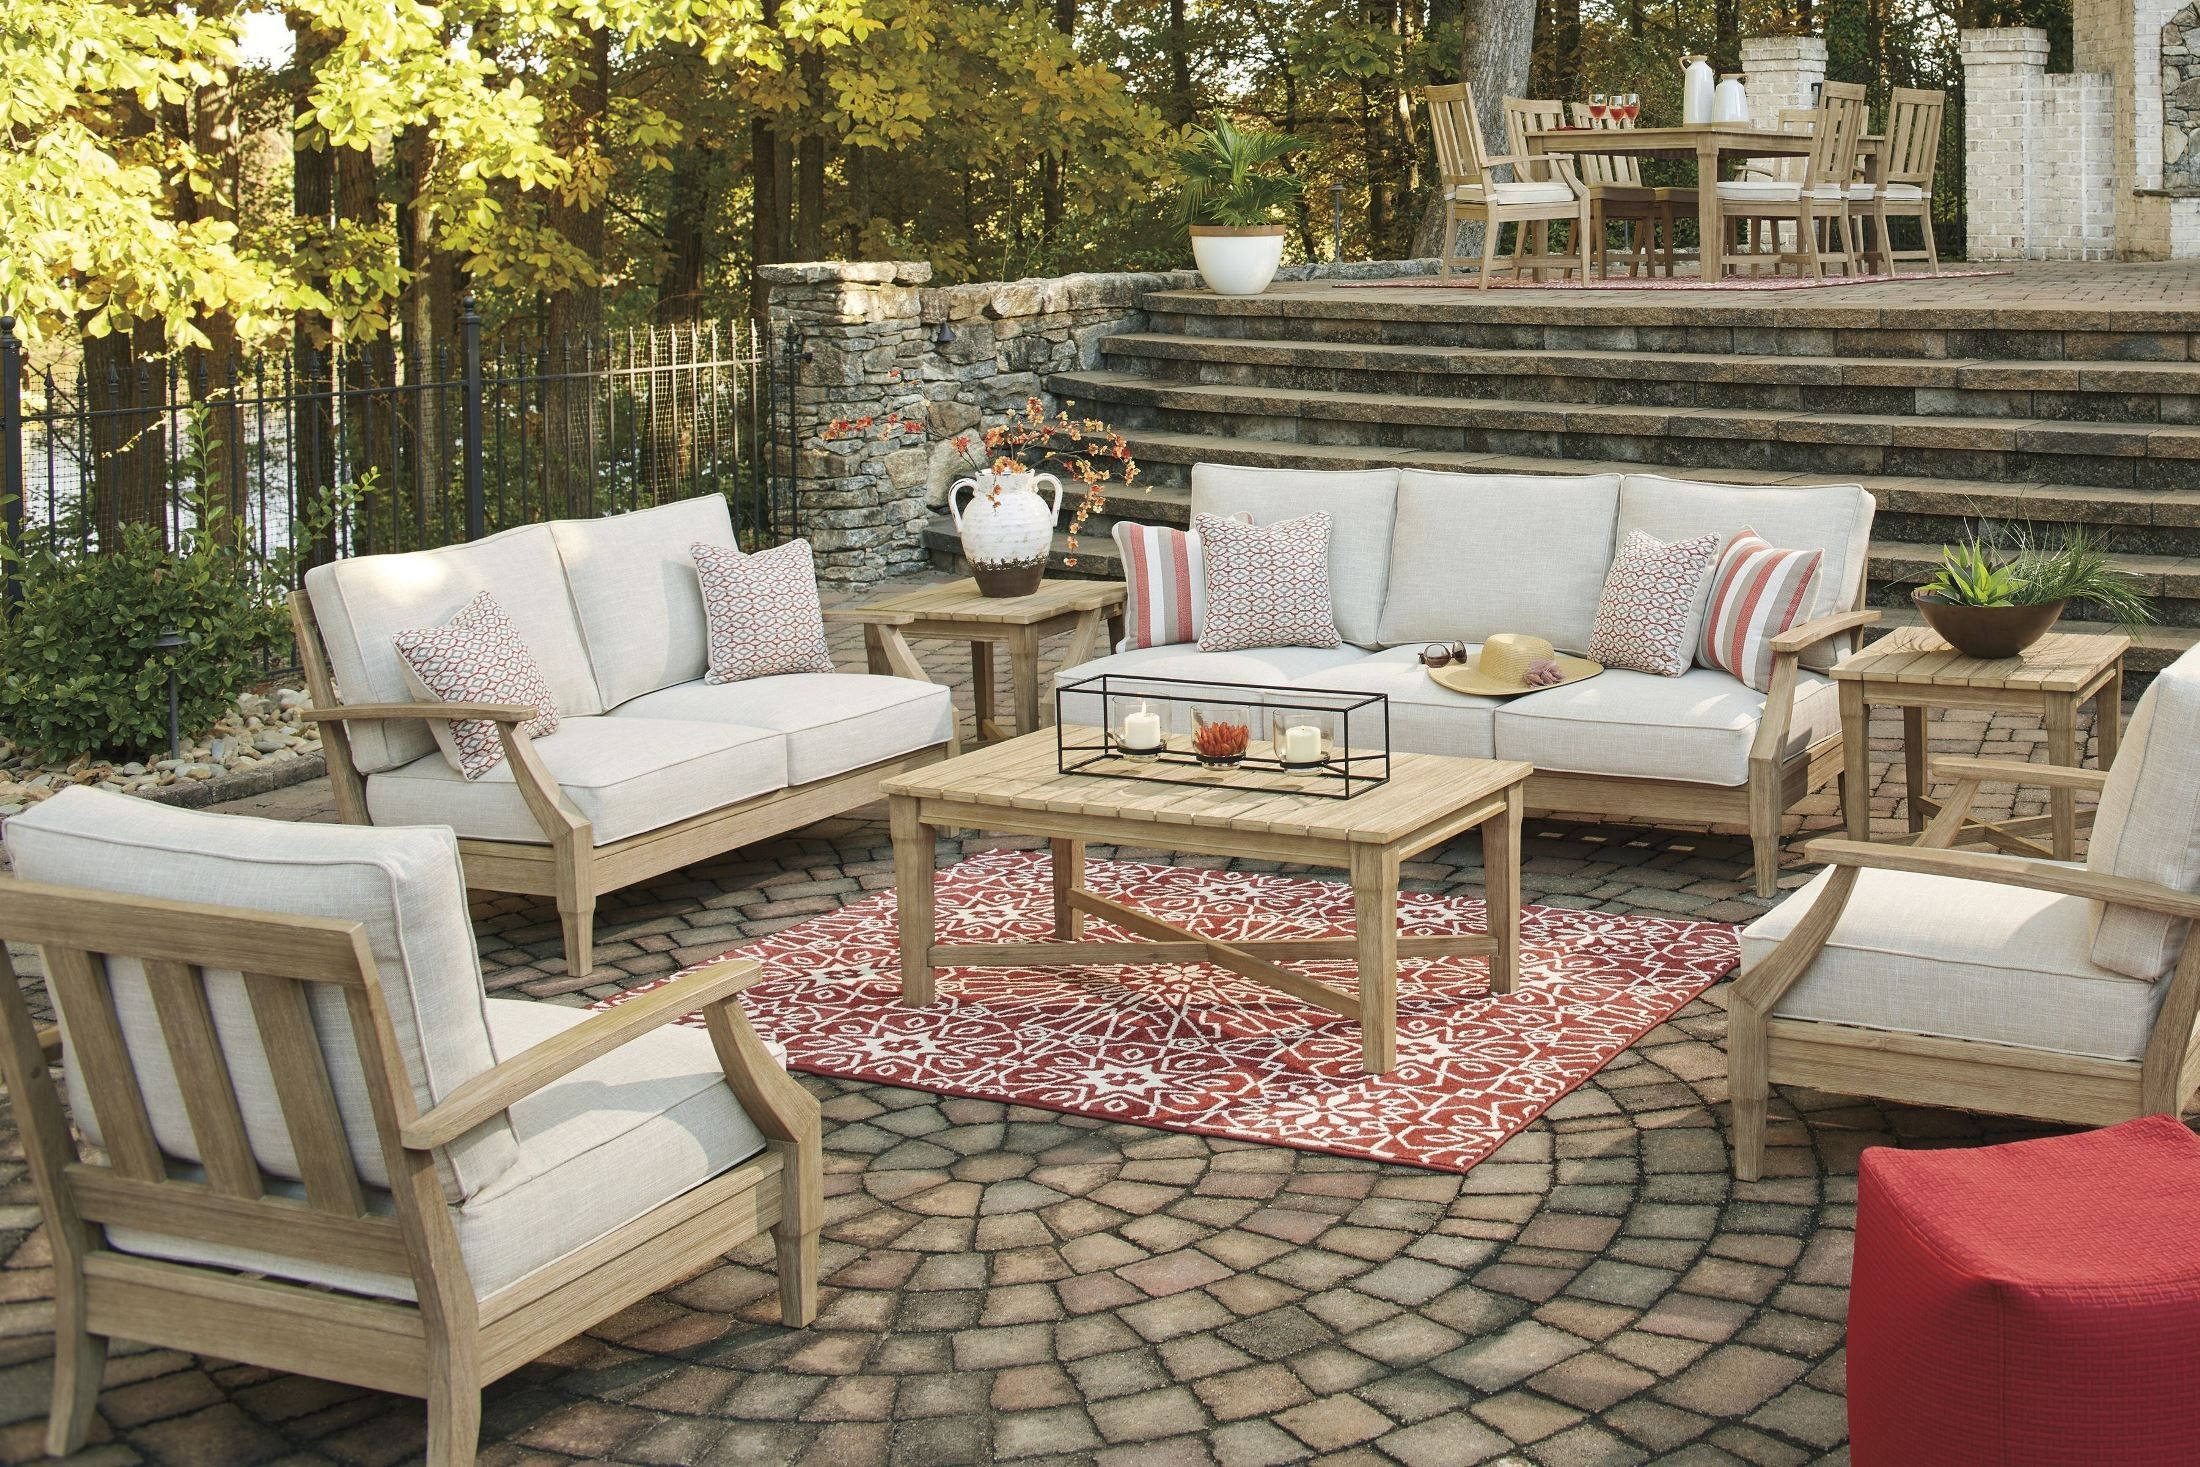 Clare View Beige Outdoor Living Room Set with Cushion ... on Clare View Beige Outdoor Living Room id=19504